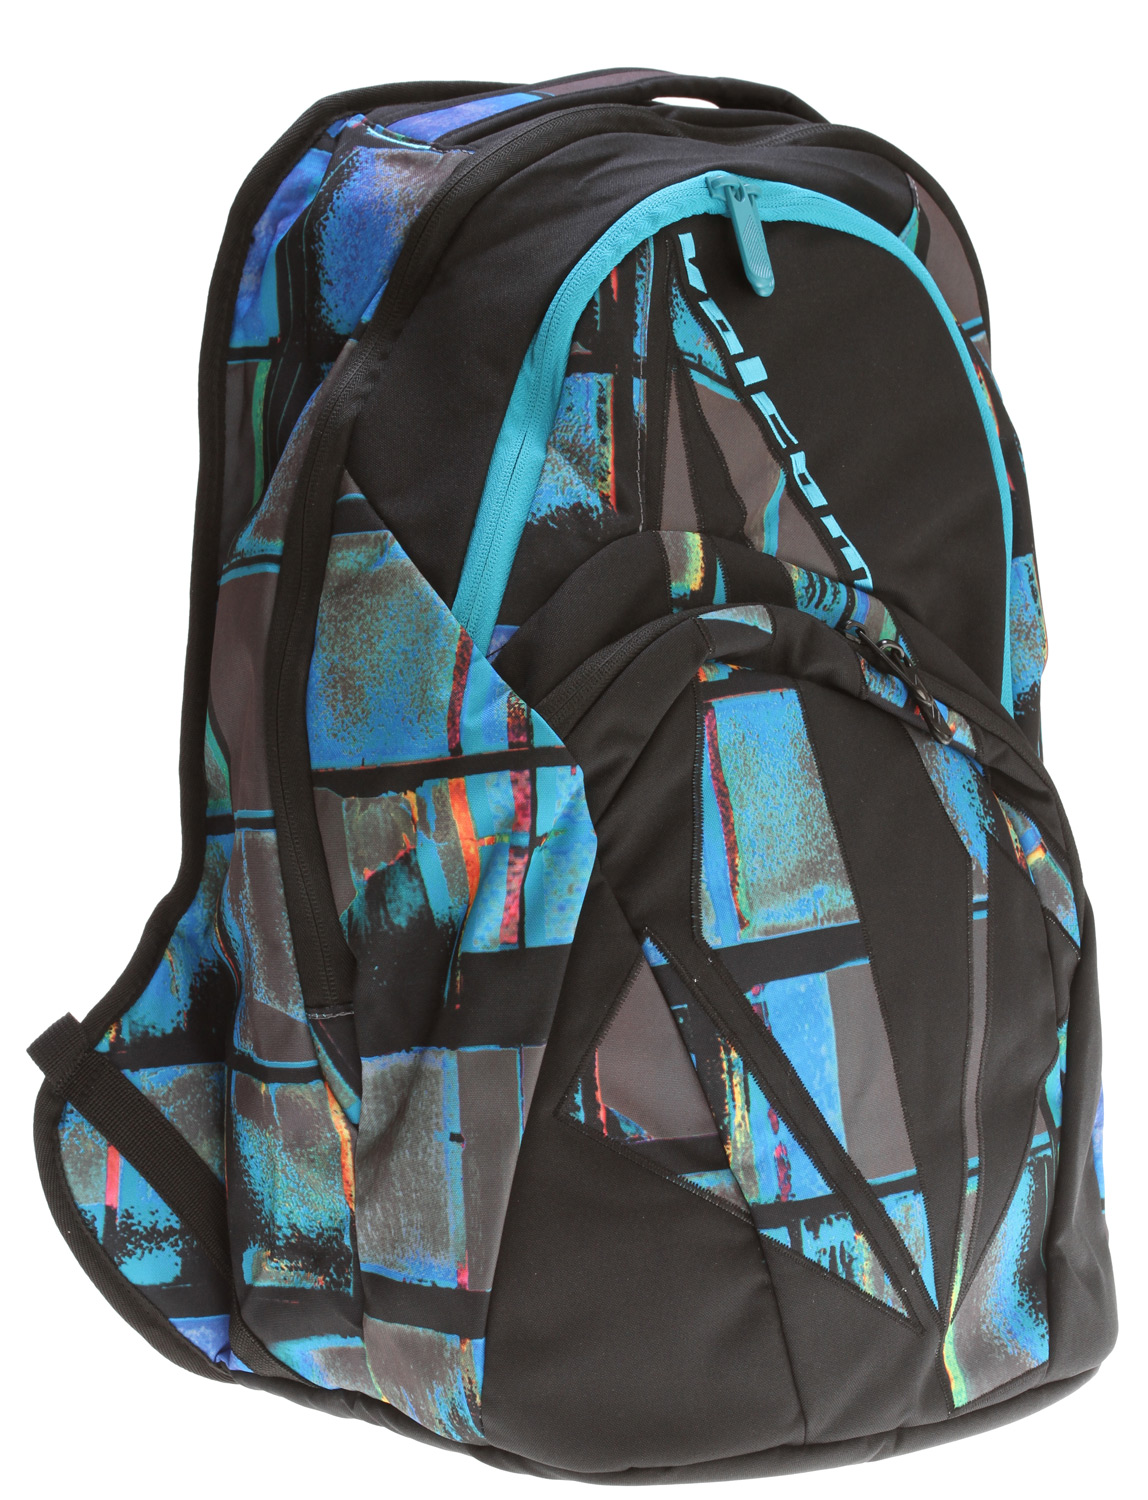 "Surf Are you tired of all the horrible looking back packs out there for sale? Don't you wish there where better looking back packs that caught your interest? Are you an adrenalin junkie? Do you love board sports? Well if you are into board sports and love adrenalin then you will probably love this Volcom Purma Backpack it's a great looking back pack at a great price. It's a great way to express your inner adrenalin junkie and carry your books at the same time. It's very light weight and durable so you will be happy for some time to come.Key Features of the Volcom Purma Backpack: Dimensions: 17 3/4""H x 11 3/8""W x 6 3/4""D (47cm H x 32cm W x 18cm D) Volume: 1159 in; (21 Liters) Weight: 1.55 lb (.7 kg) 4 compartment/2 pocket backpack with Volcom print artwork Sold Individually/By Color100% Polyester - $35.95"